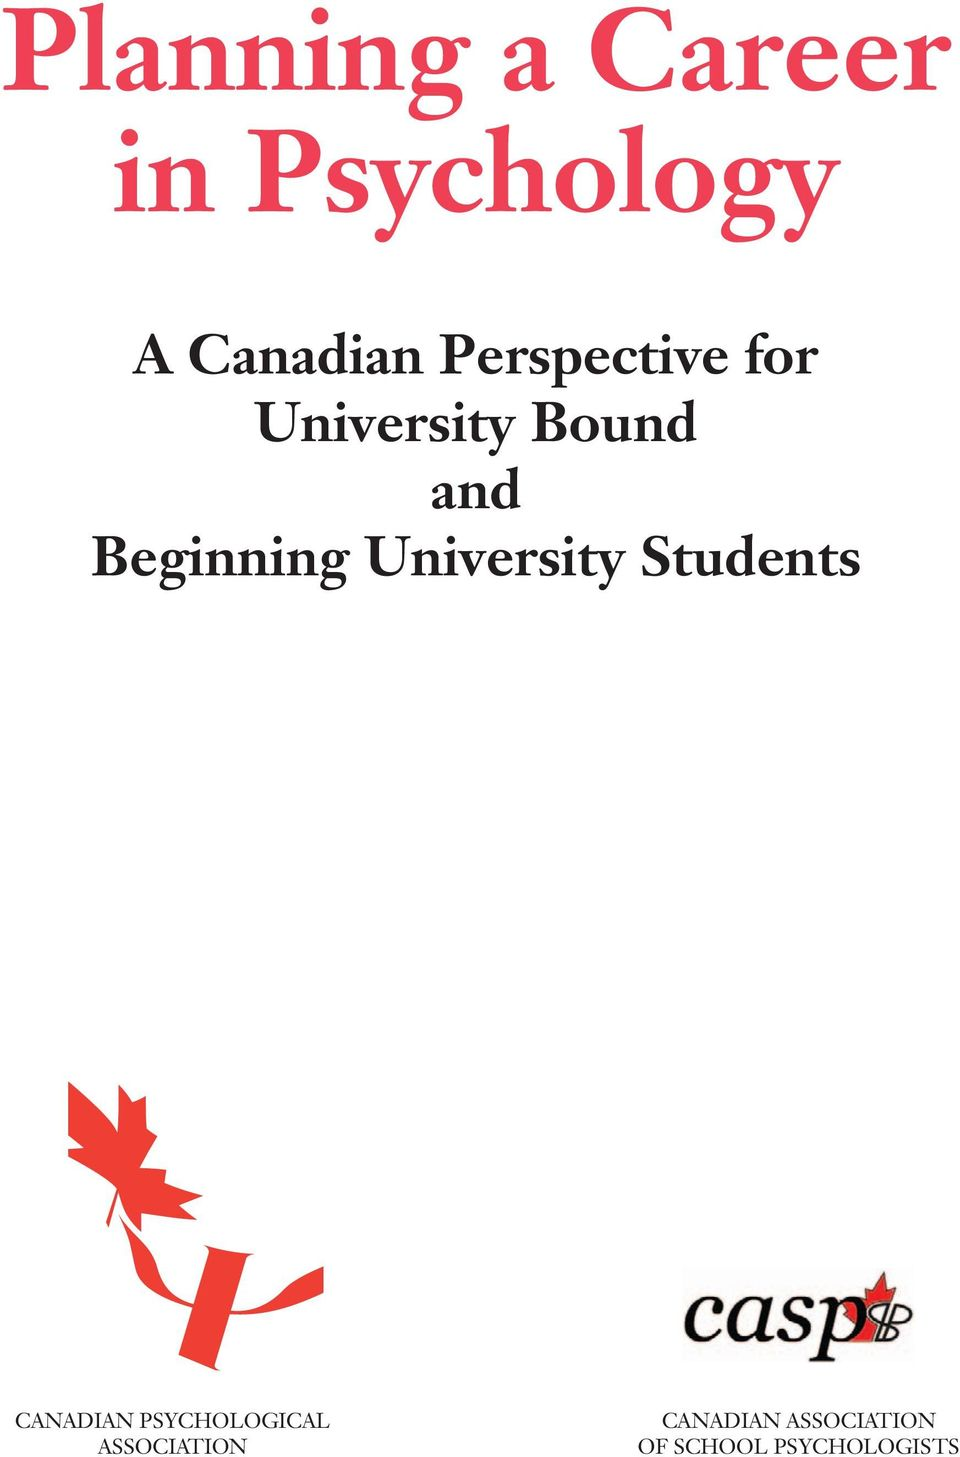 University Students CANADIAN PSYCHOLOGICAL